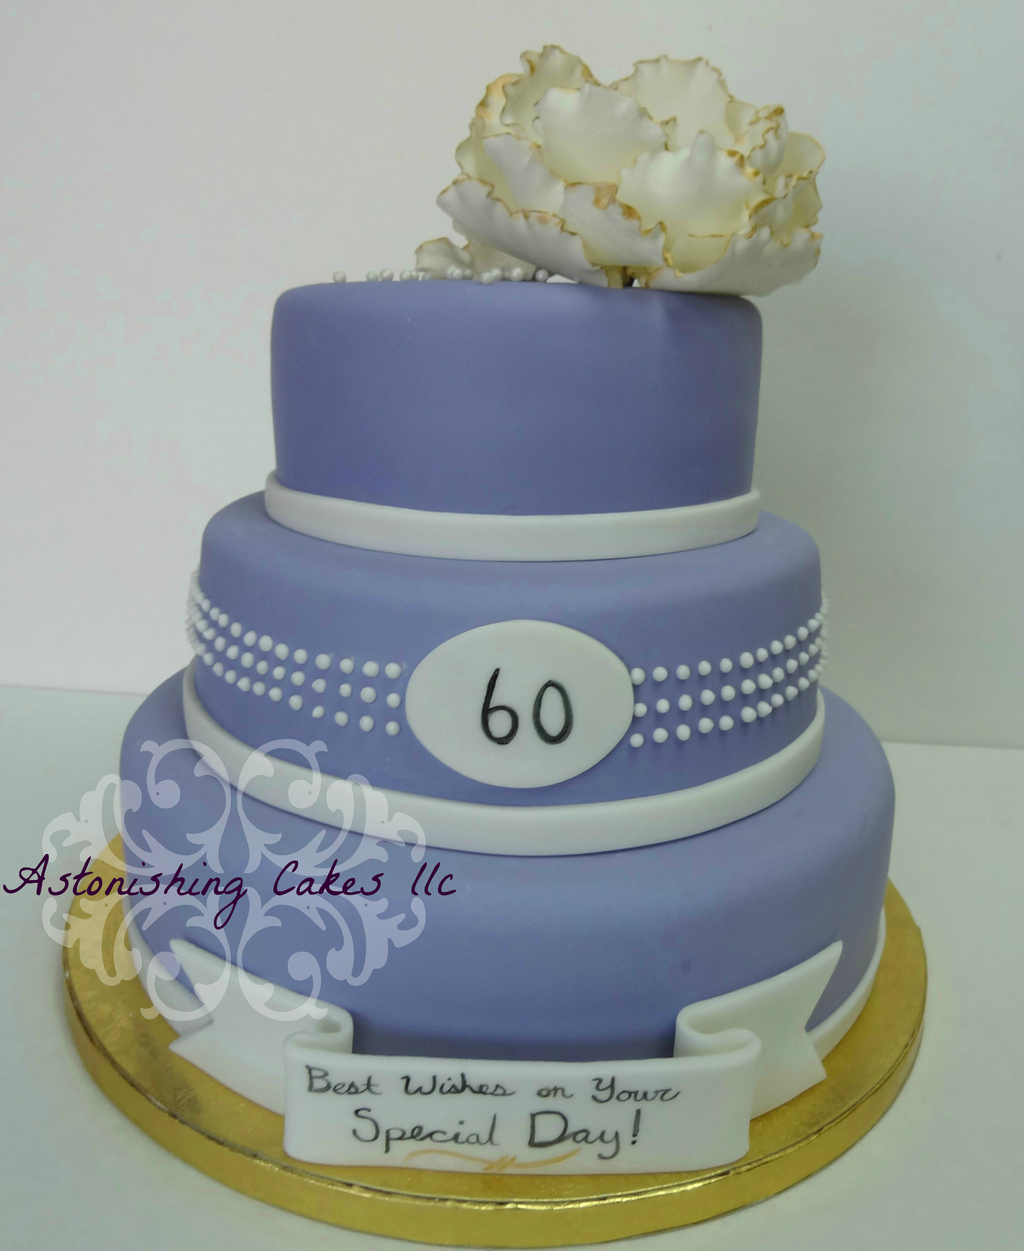 Lavendar%2060th%20birthday-wm.full